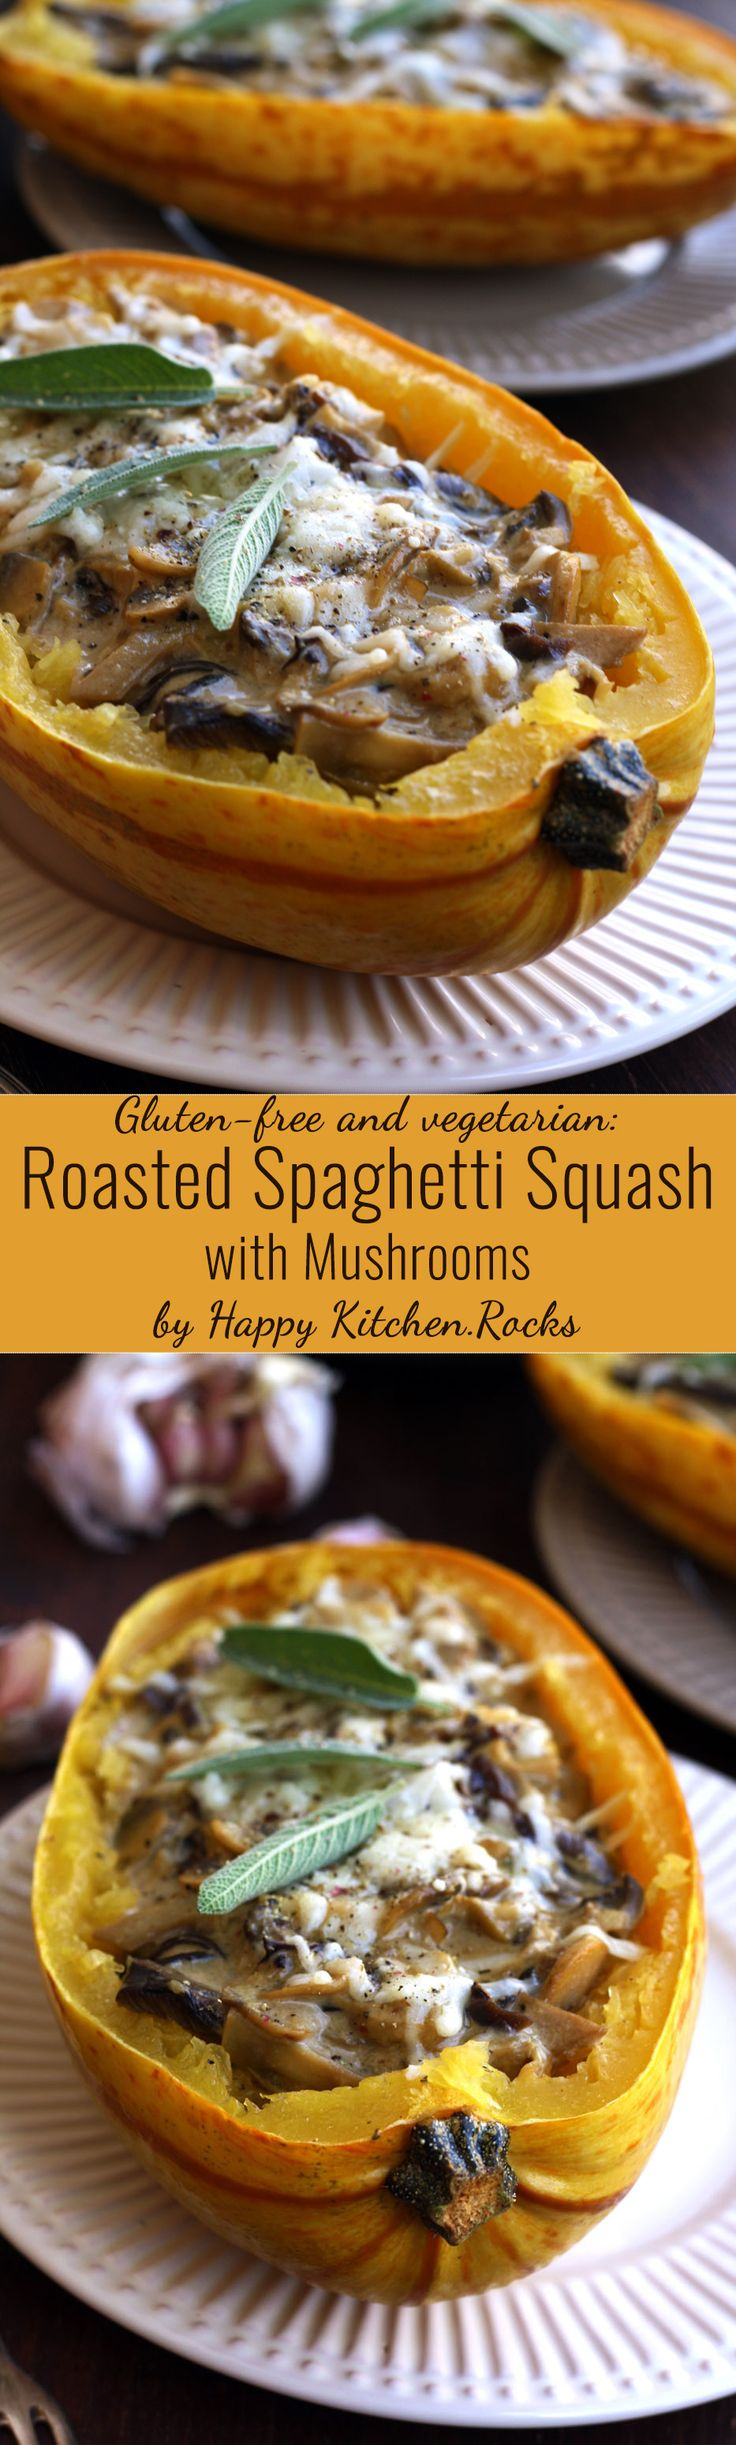 Easy and delicious roasted spaghetti squash with mushrooms made with 9 simple ingredients. Great vegetarian and gluten-free dinner recipe ready in 1 hour from start to finish!